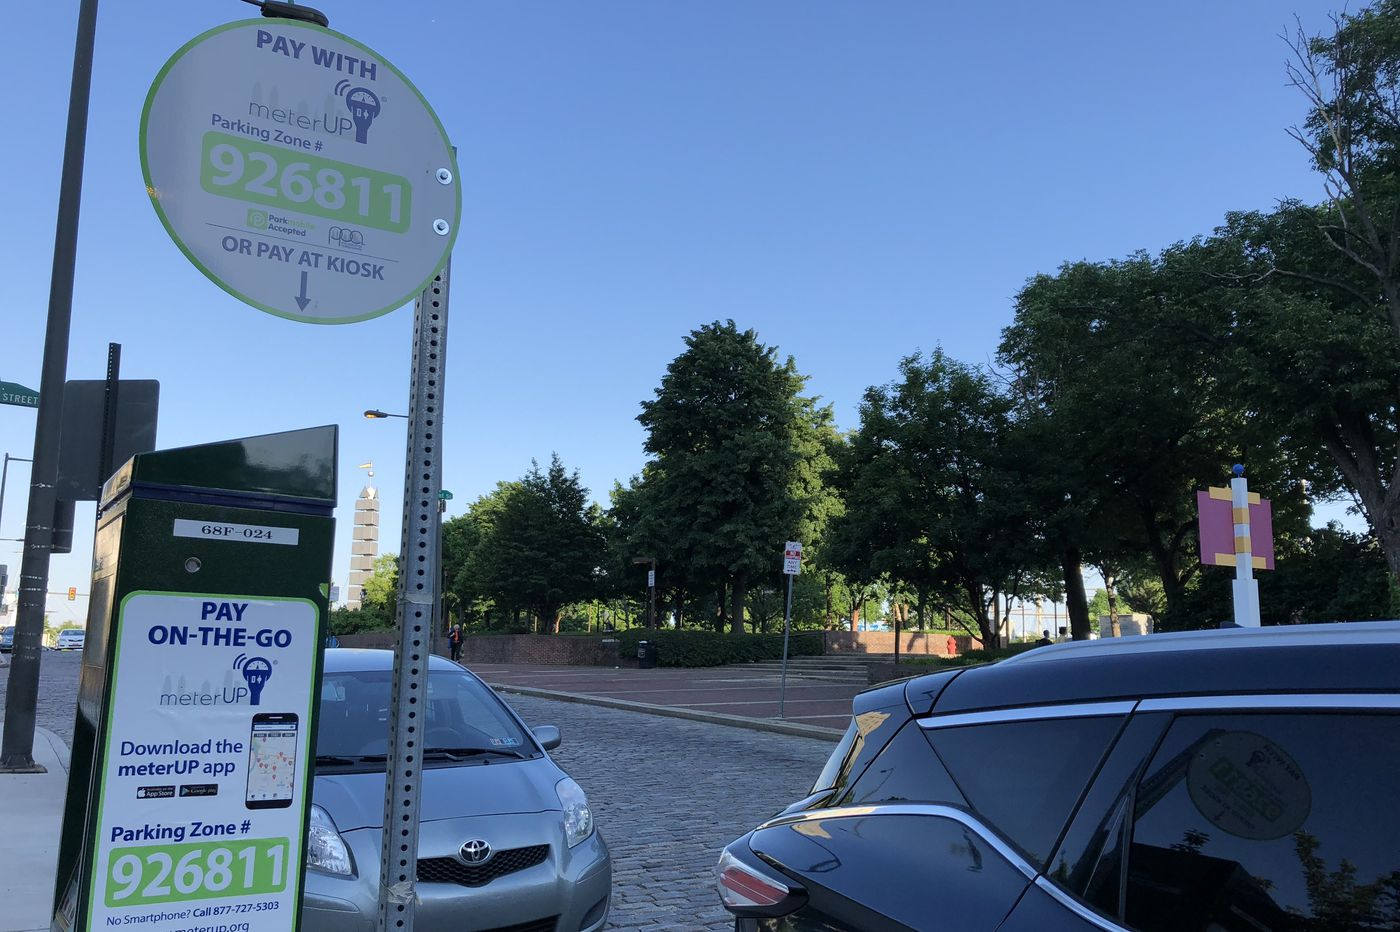 Pay-by-phone parking expands as PPA eyes new parking policies